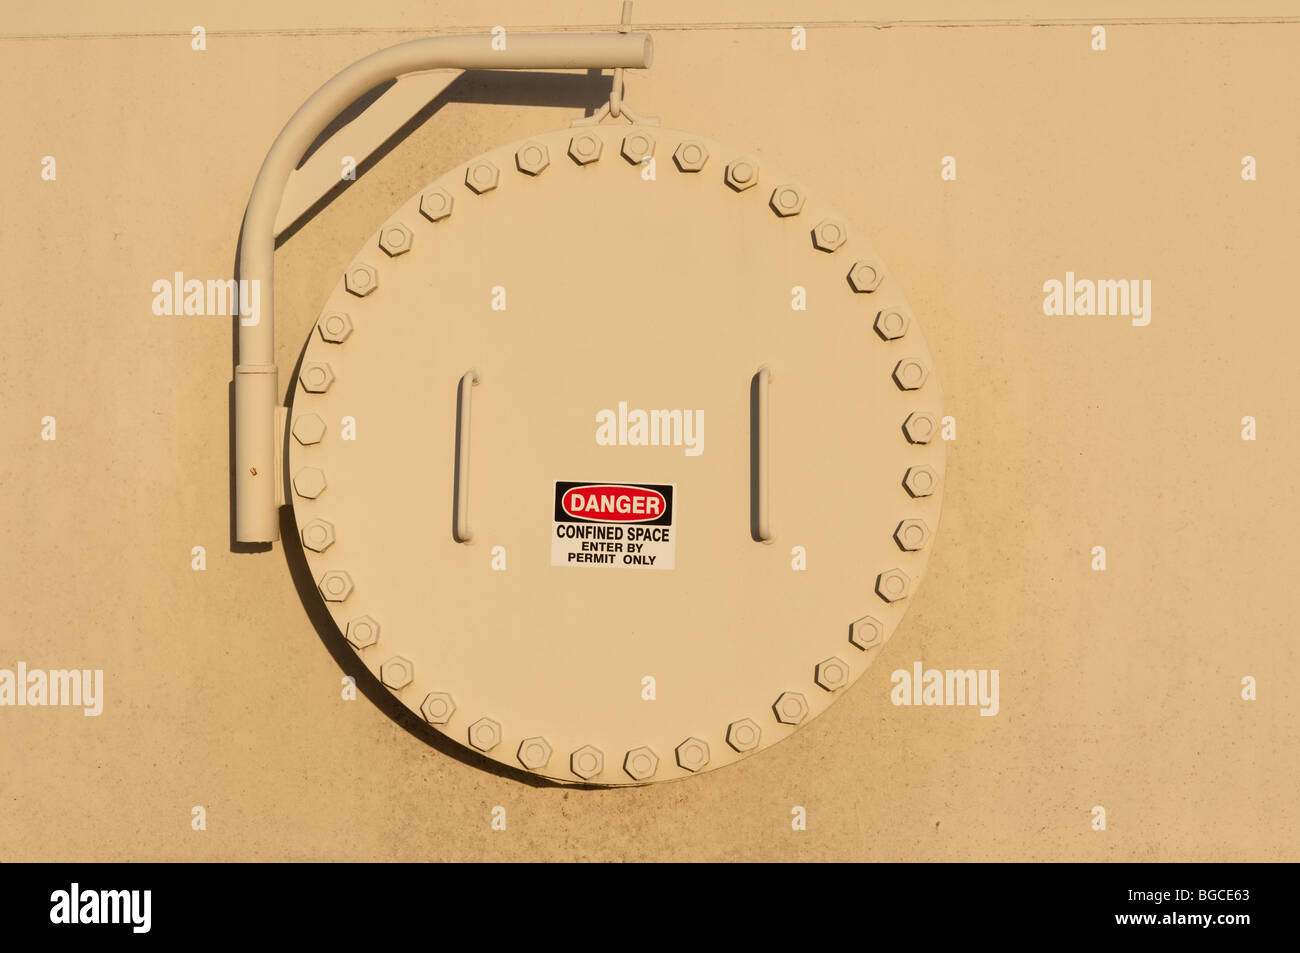 Tank confined space entry with warning sign - Stock Image